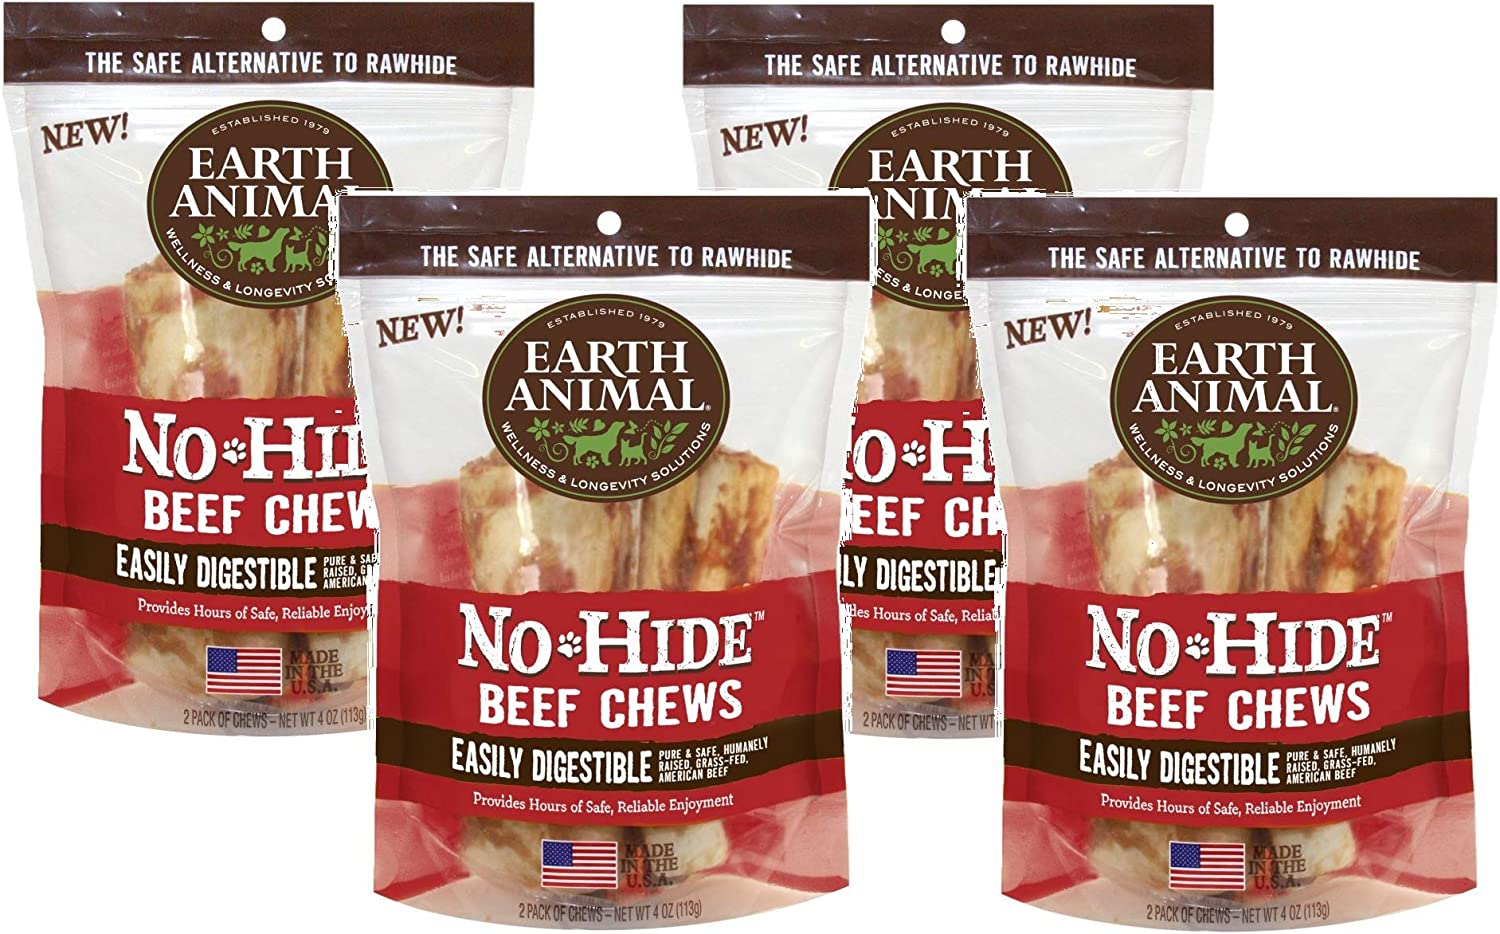 Earth Animal No Hide Beef Chews, 4 Inches, Rawhide Alternative Dog Treats